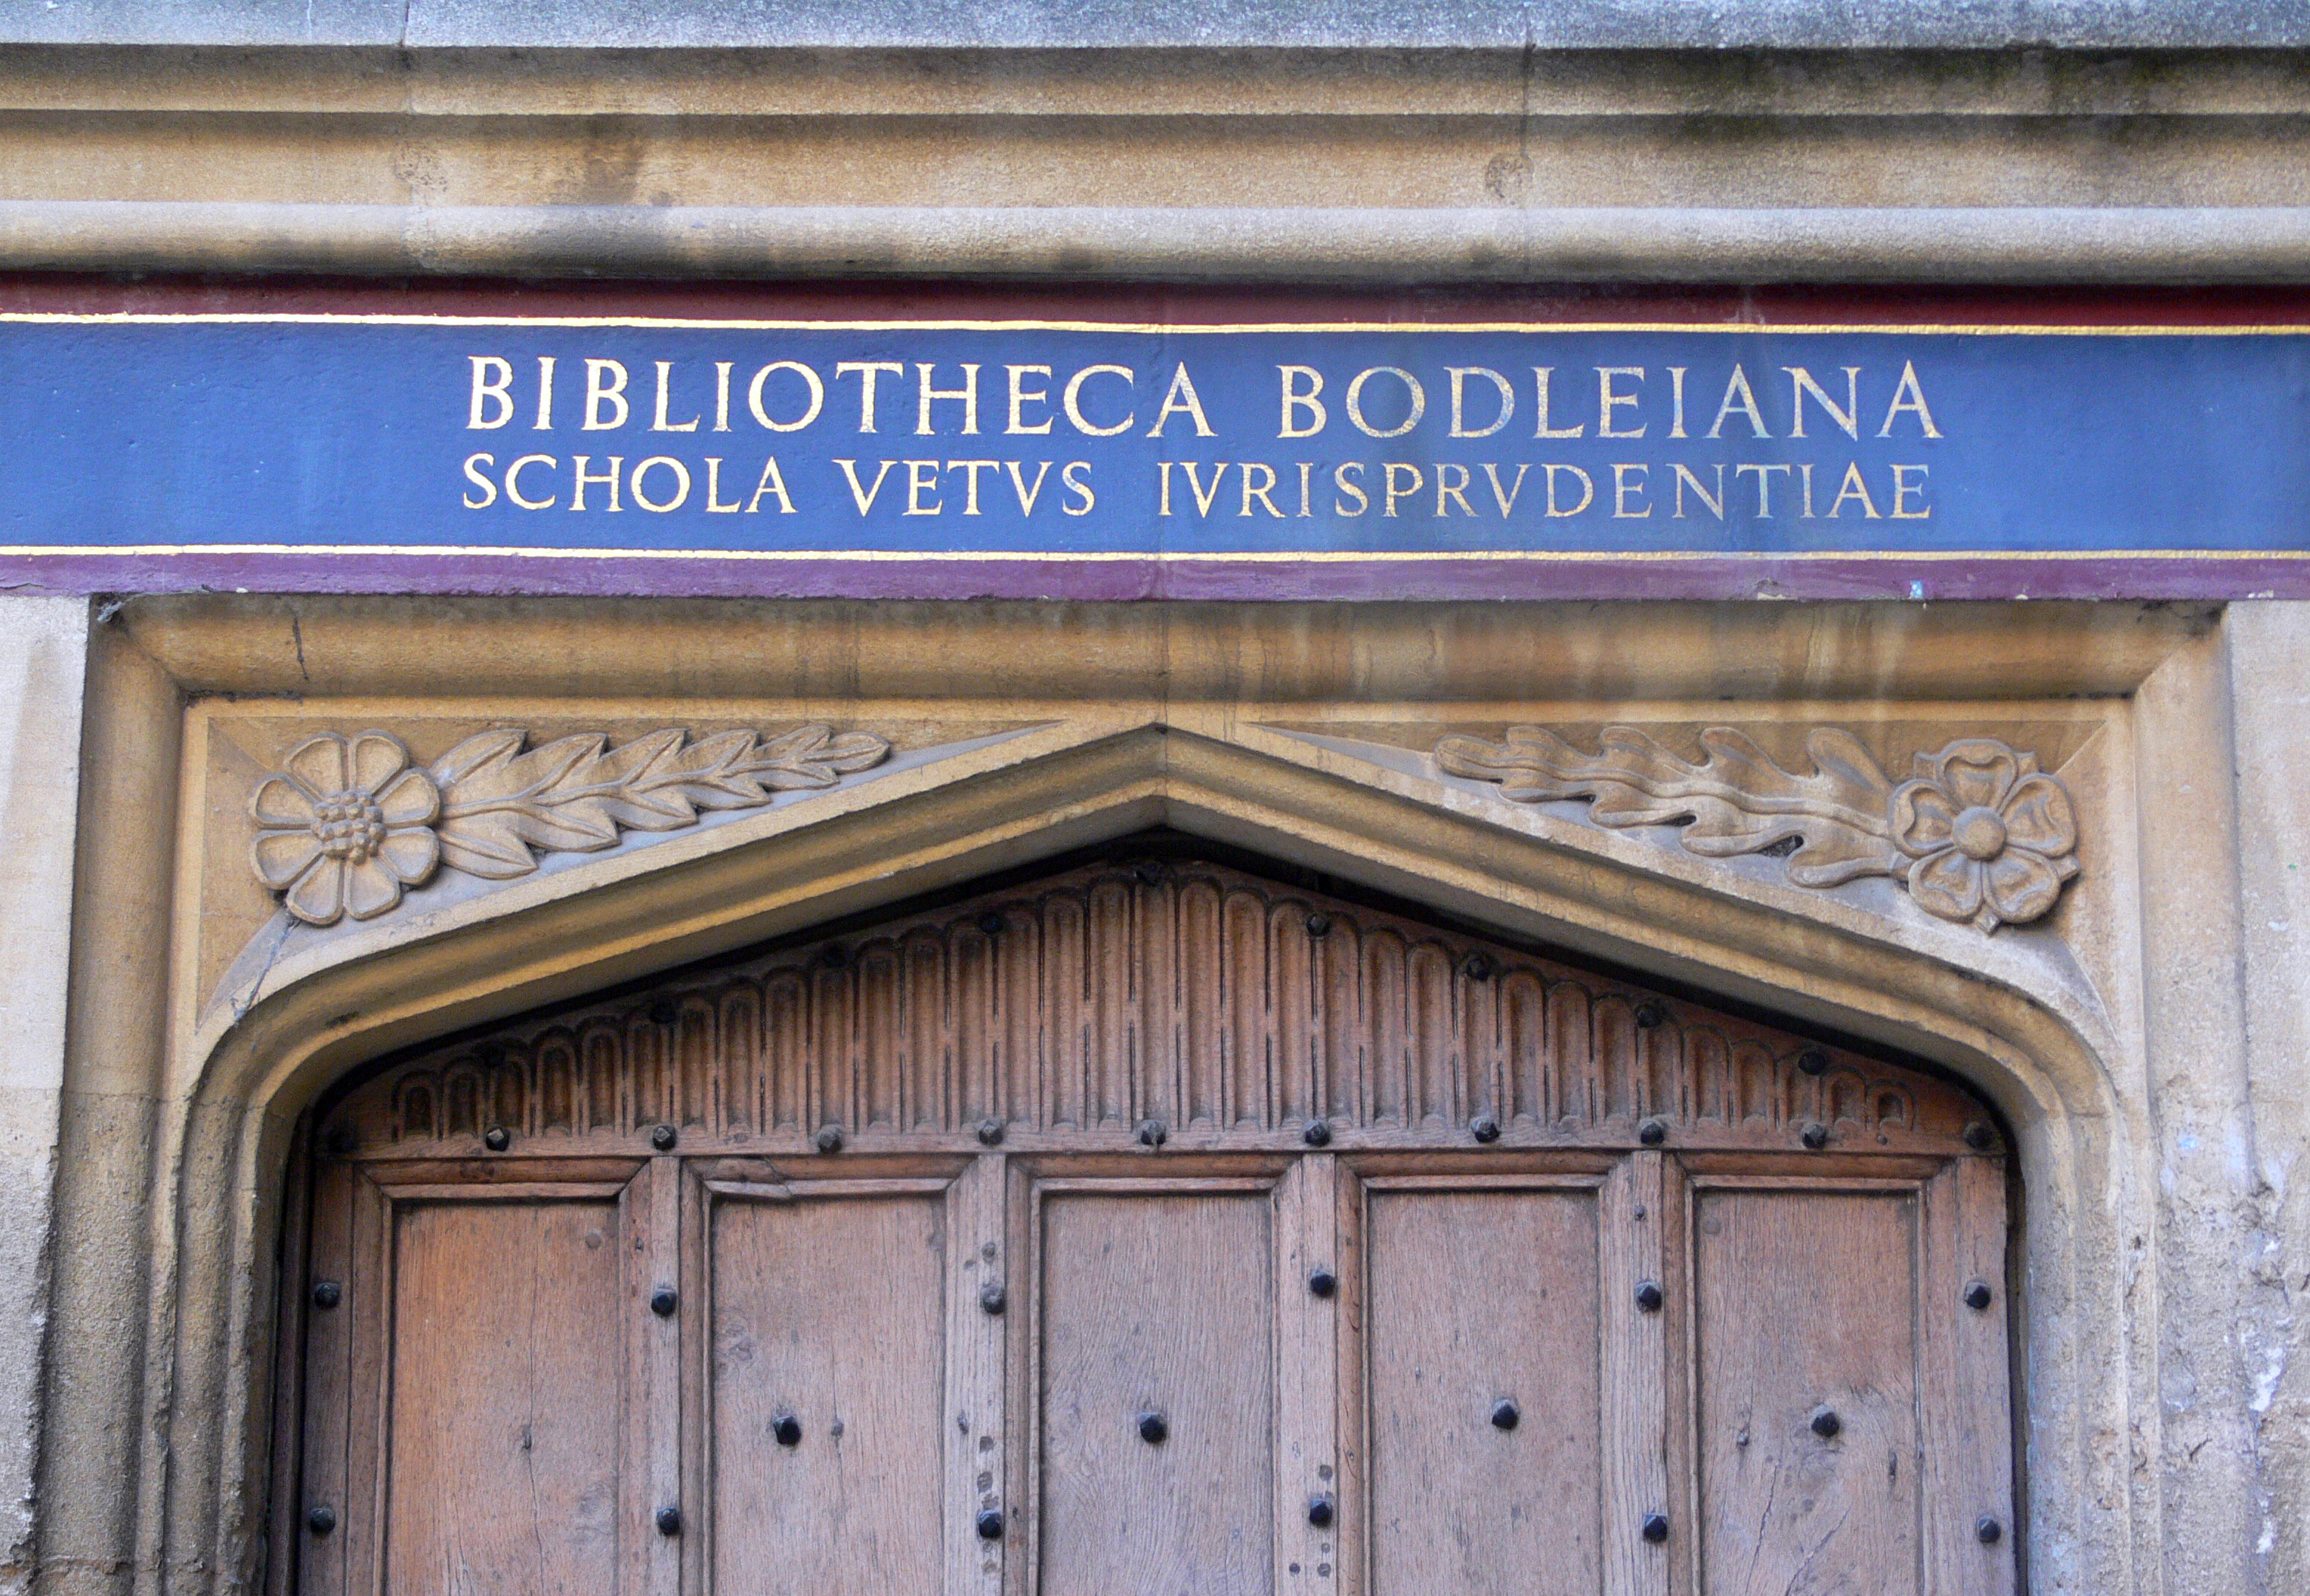 https://upload.wikimedia.org/wikipedia/commons/0/0d/Oxford_-_Bodleian_Library_-_inscription_on_the_door.JPG